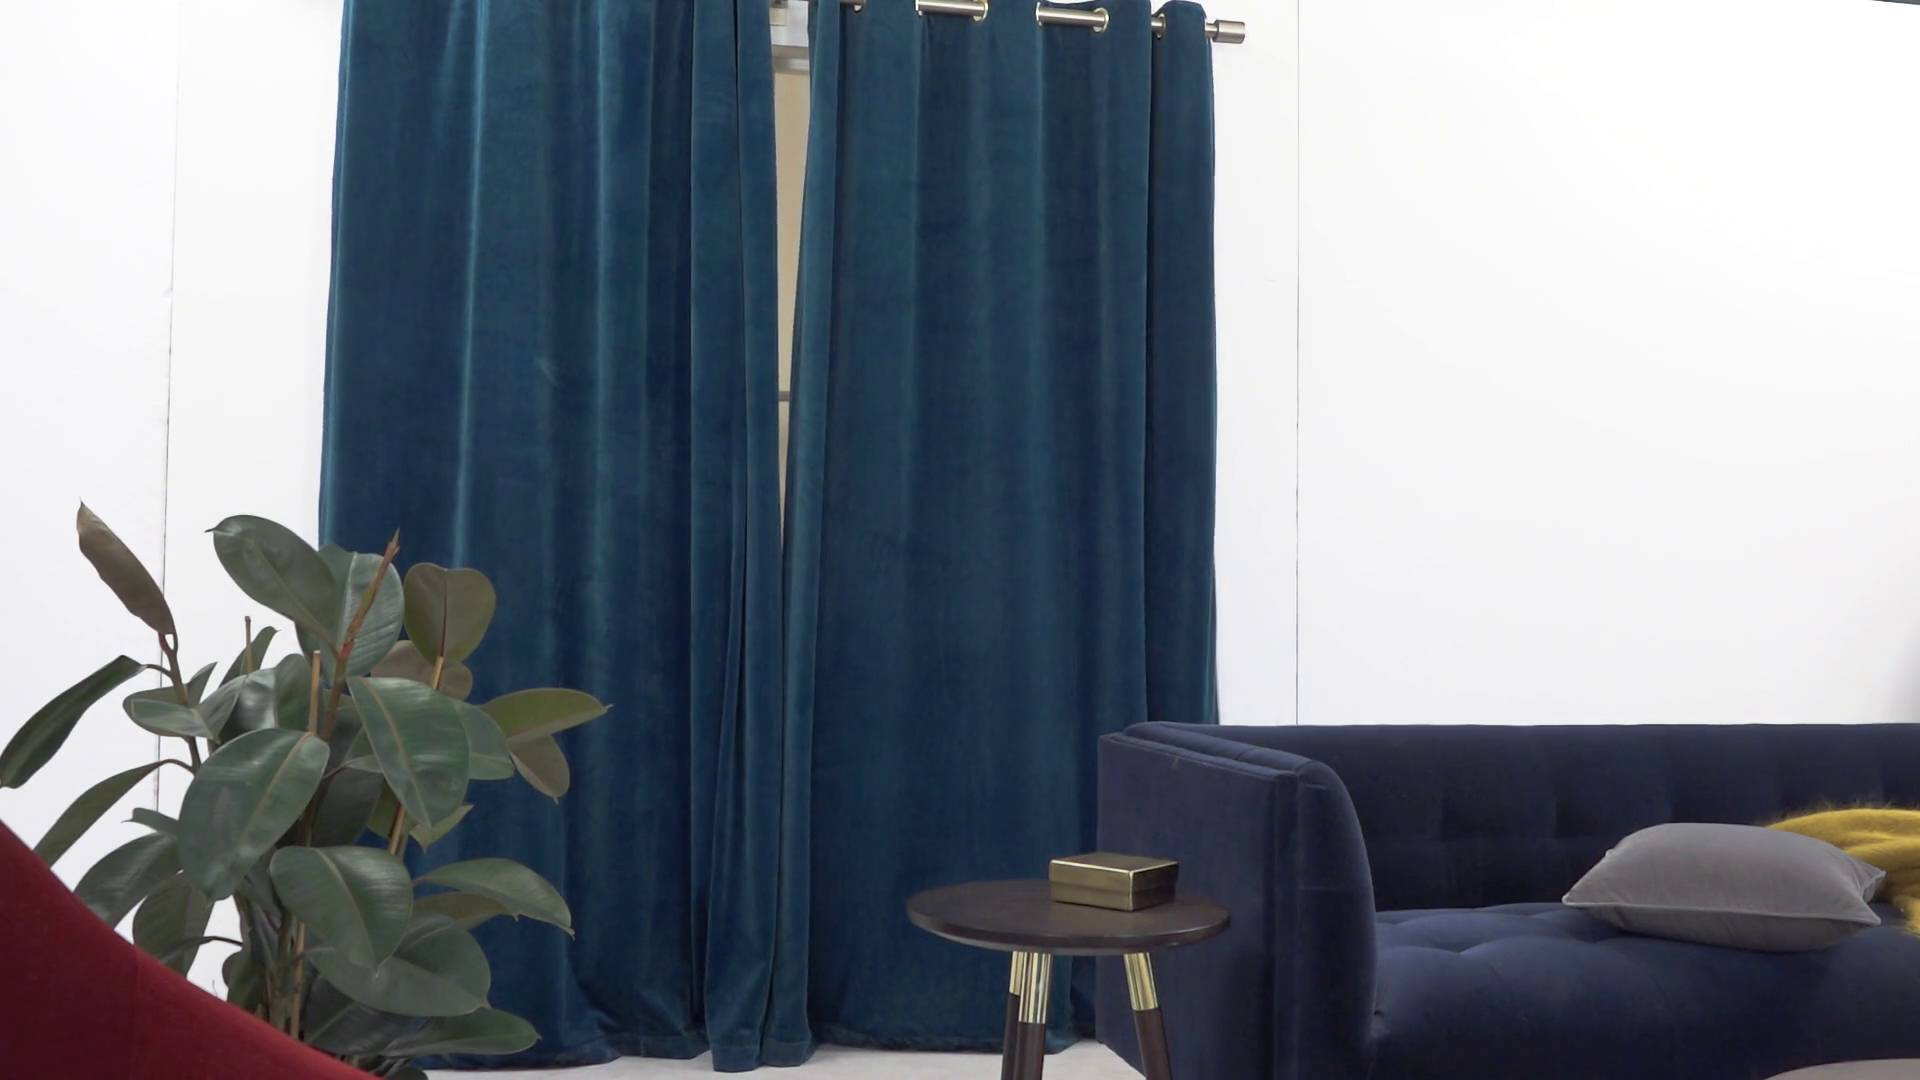 voile curtains ready blackout living rainbow coloured patterned cool eyelet best made bedroom light decorating curtain winning tealwhite design chevron panel teal window